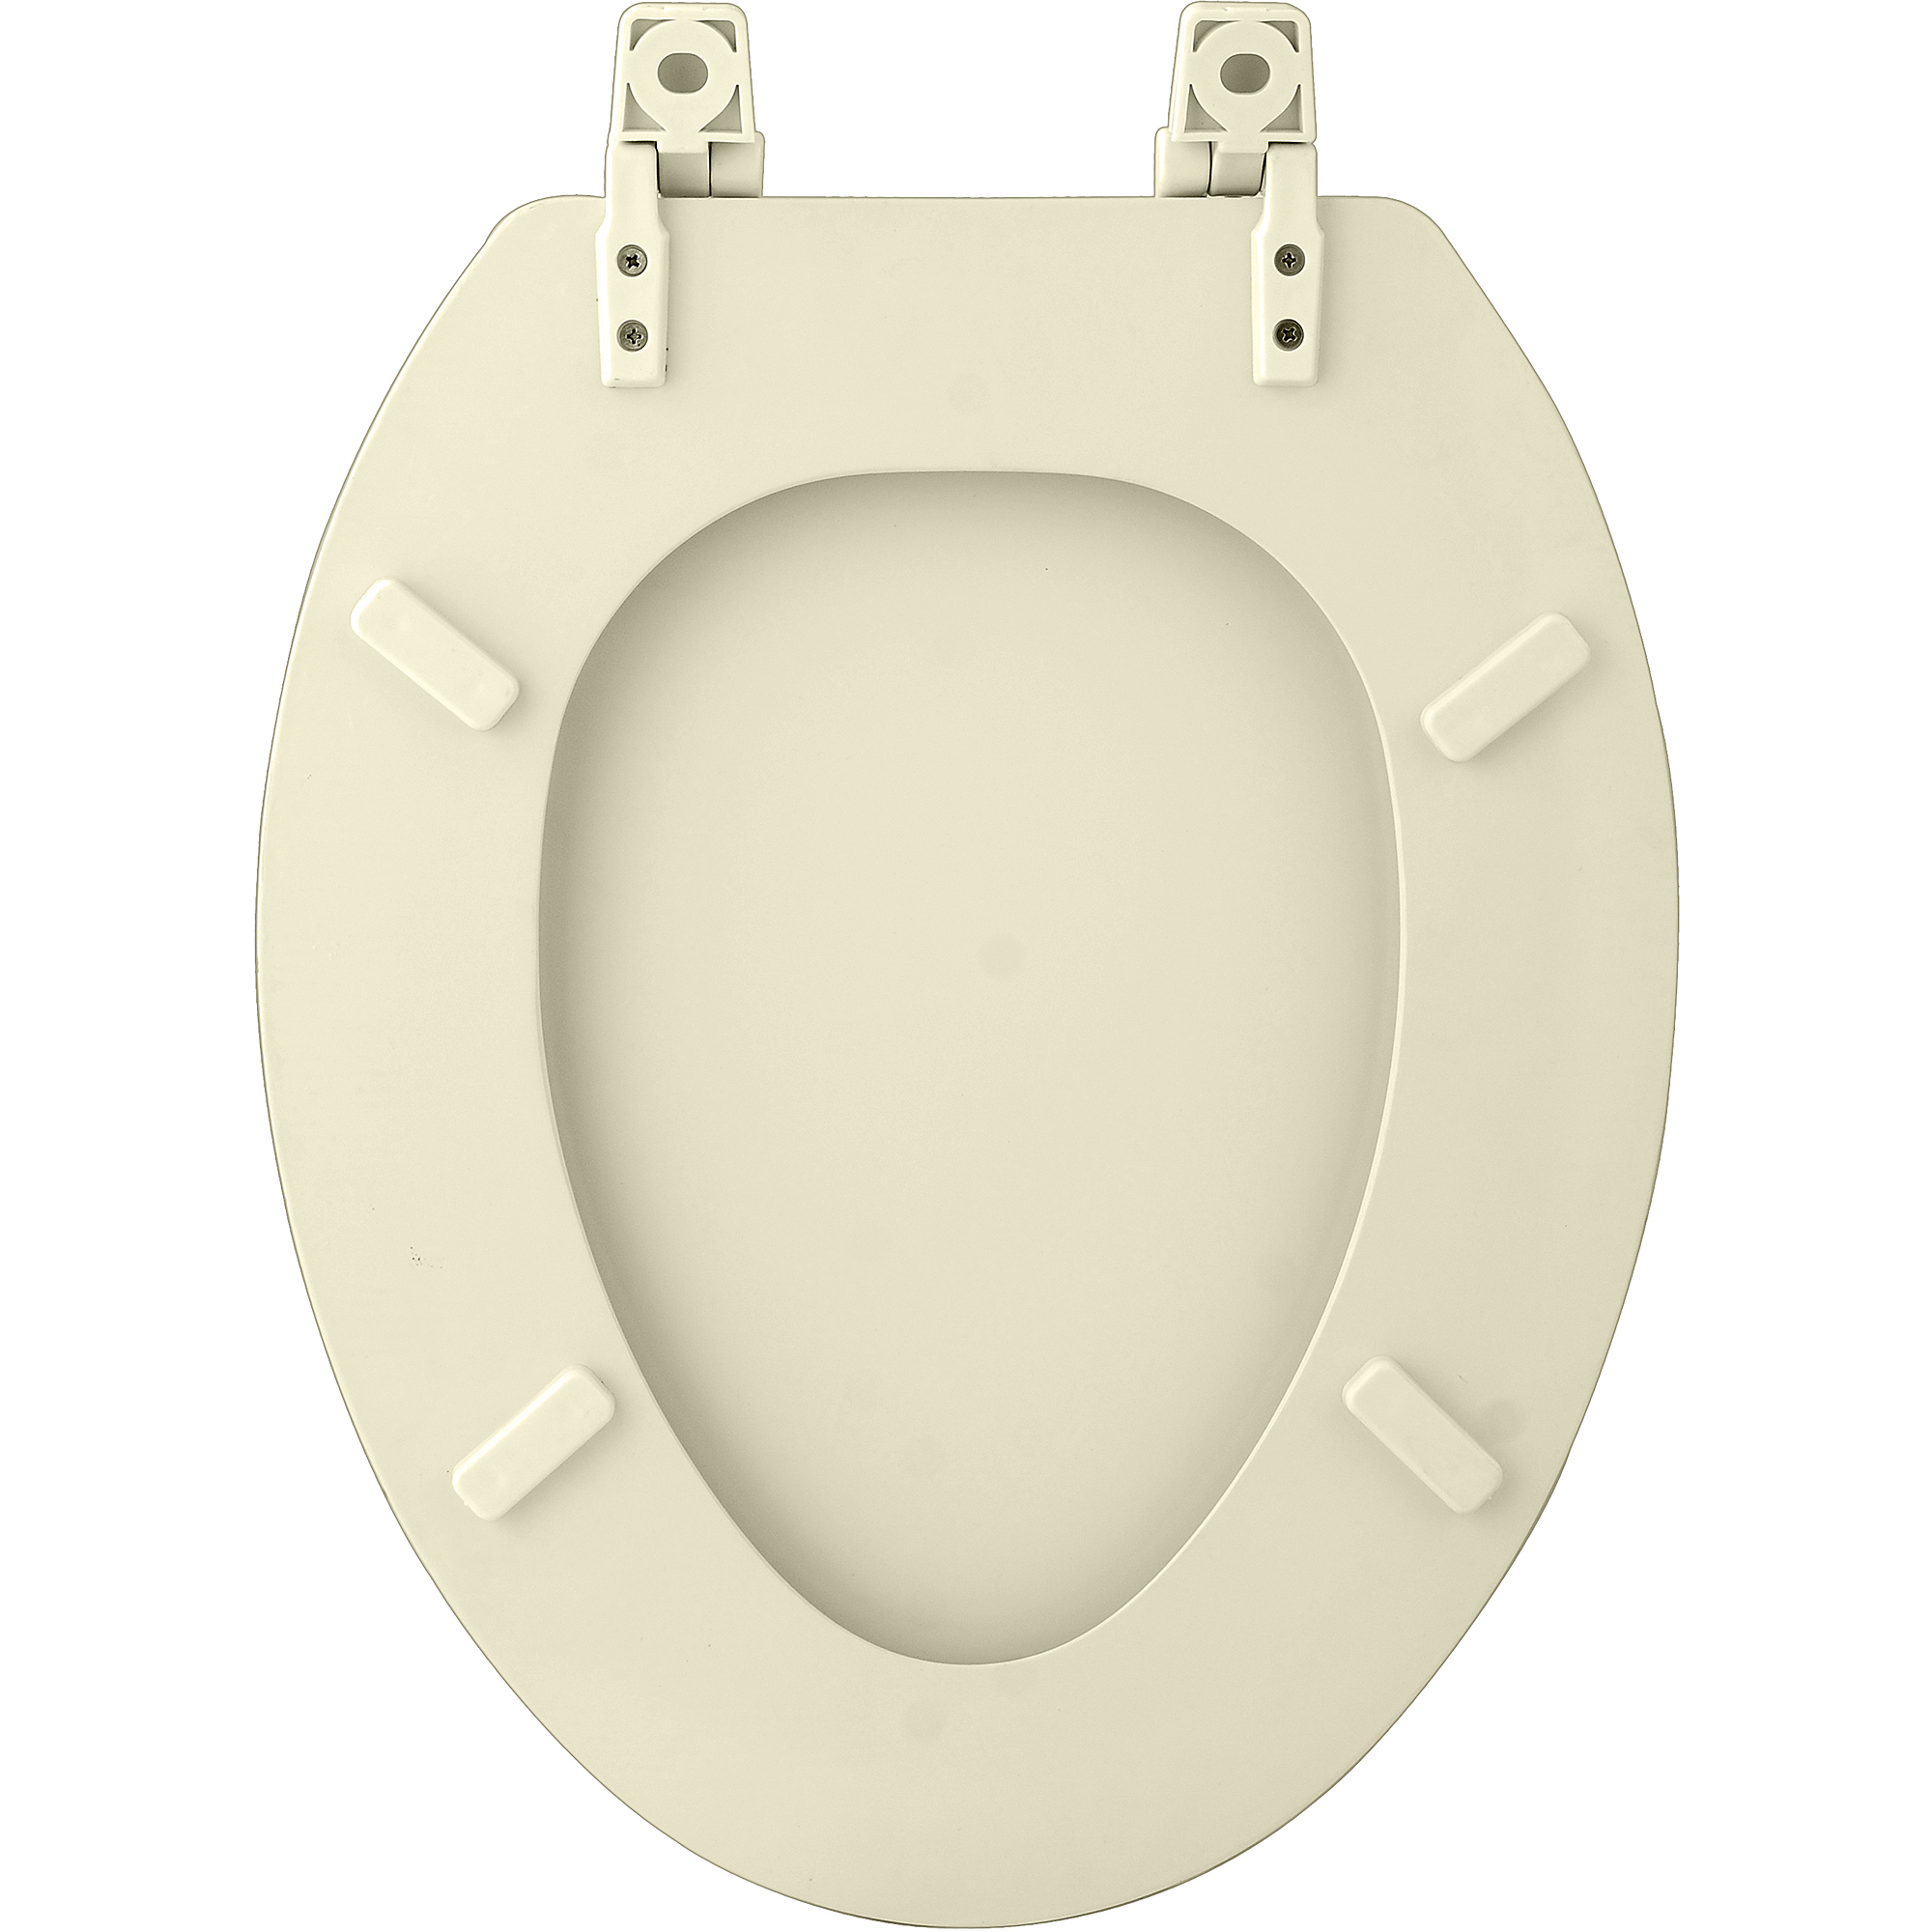 Fantasia 19  Elongated Wood Toilet Seat All Seats Walmart com